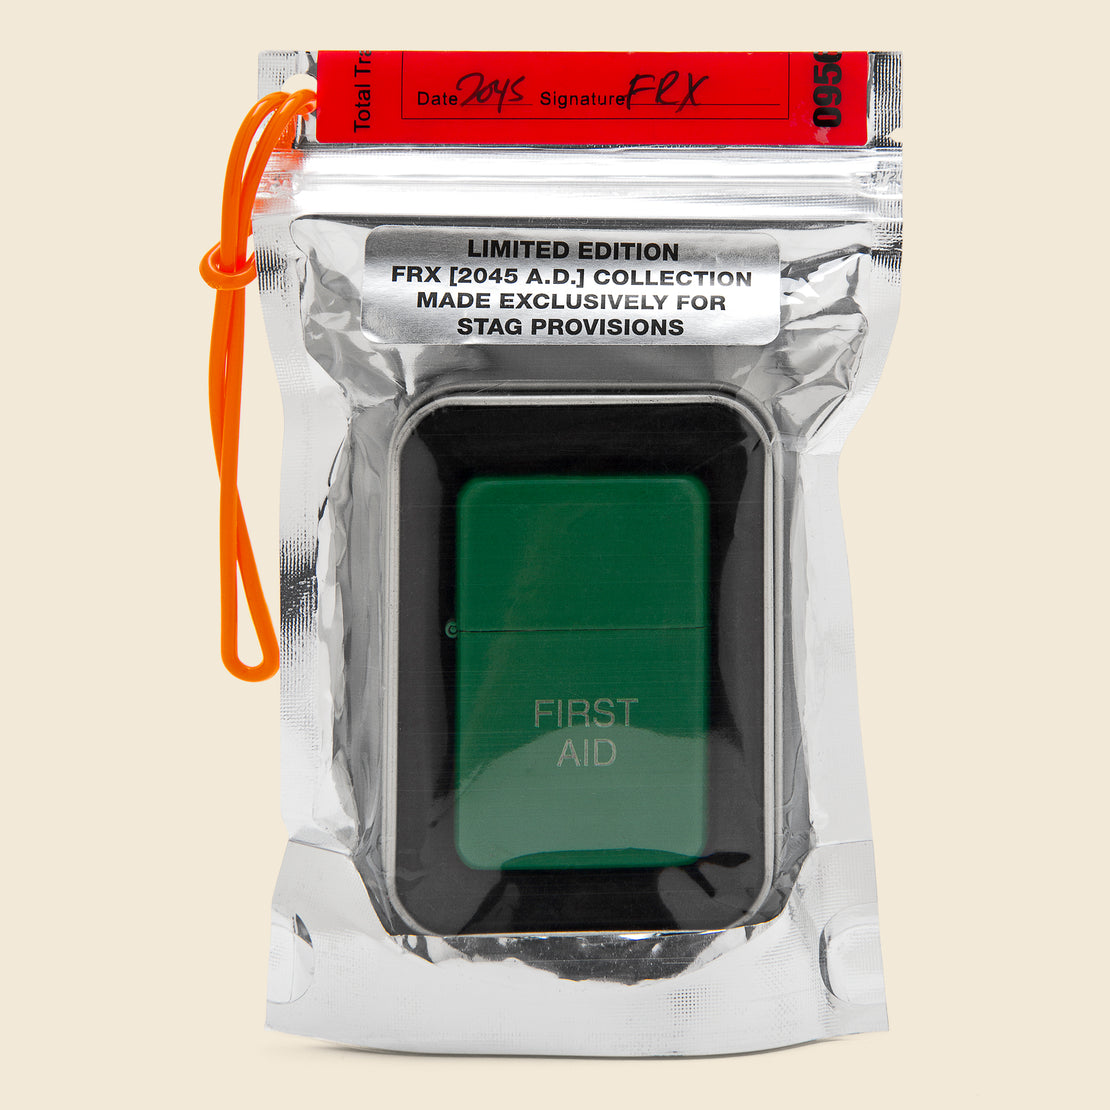 Field Rations Zippo Lighter - FIRST AID